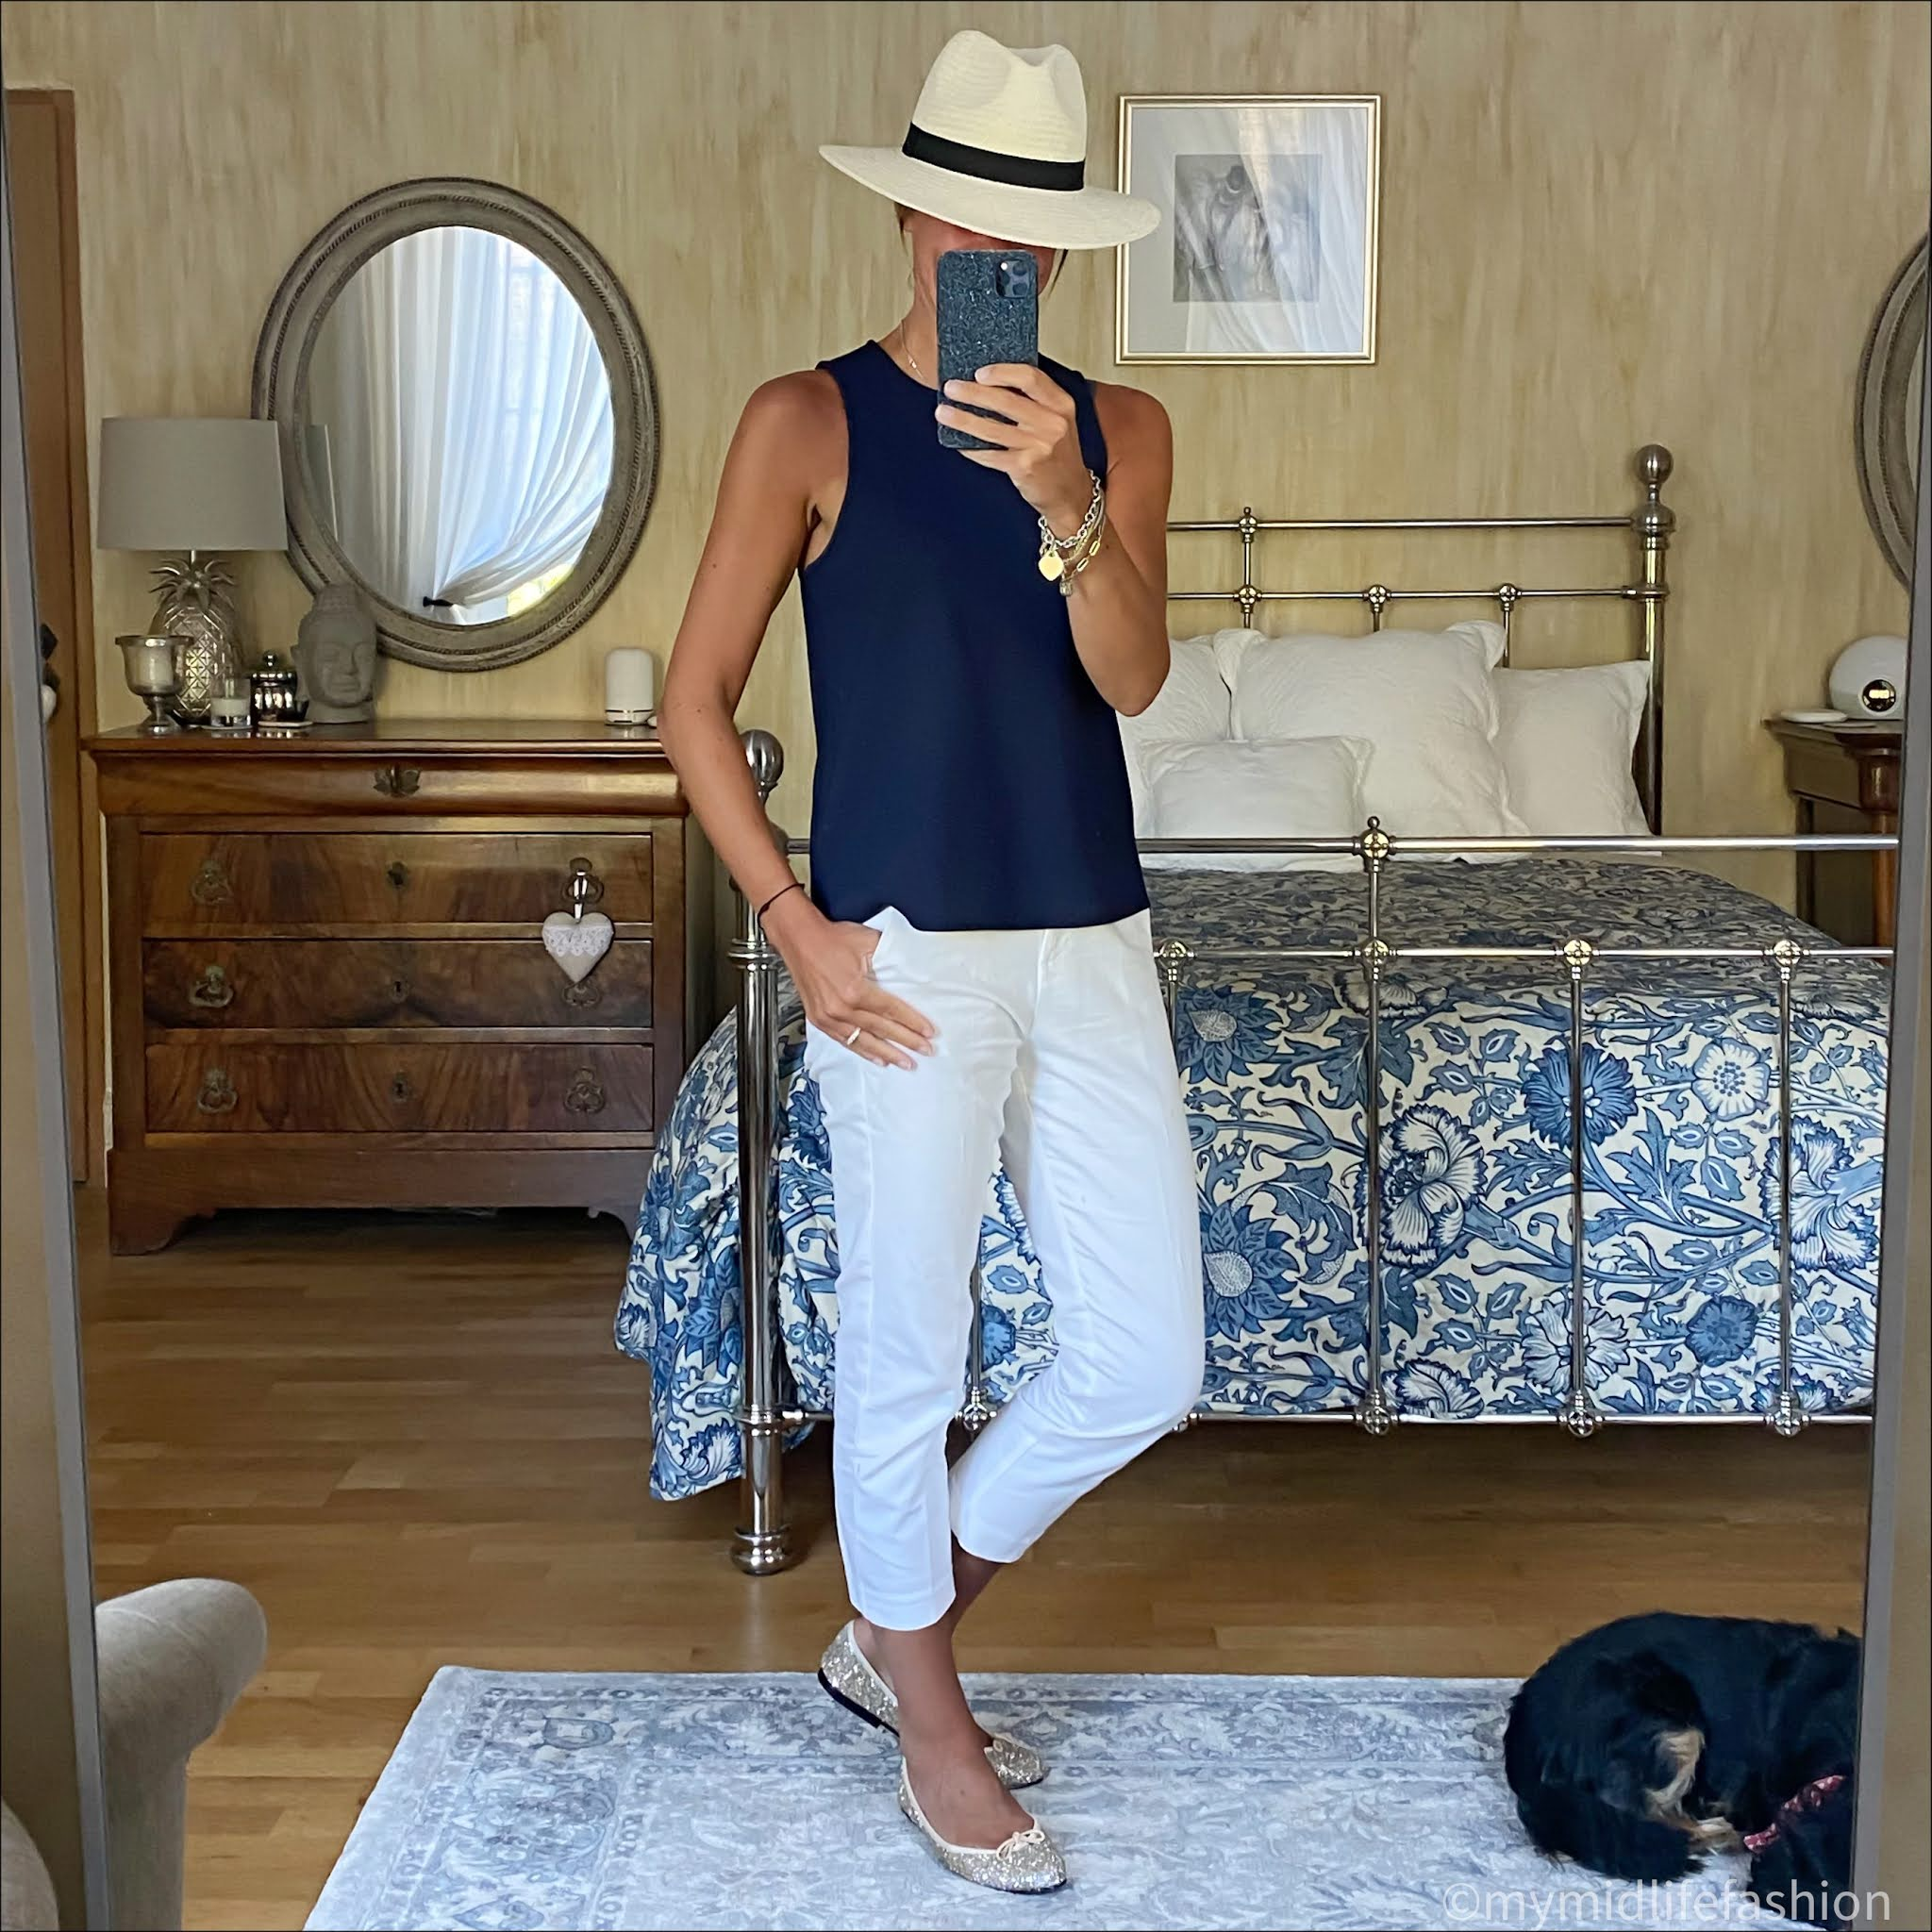 my midlife fashion, zara Panama hat, tibi sleeveless tank top, marks and Spencer capri trousers, French sole Henriette glitter ballet pumps